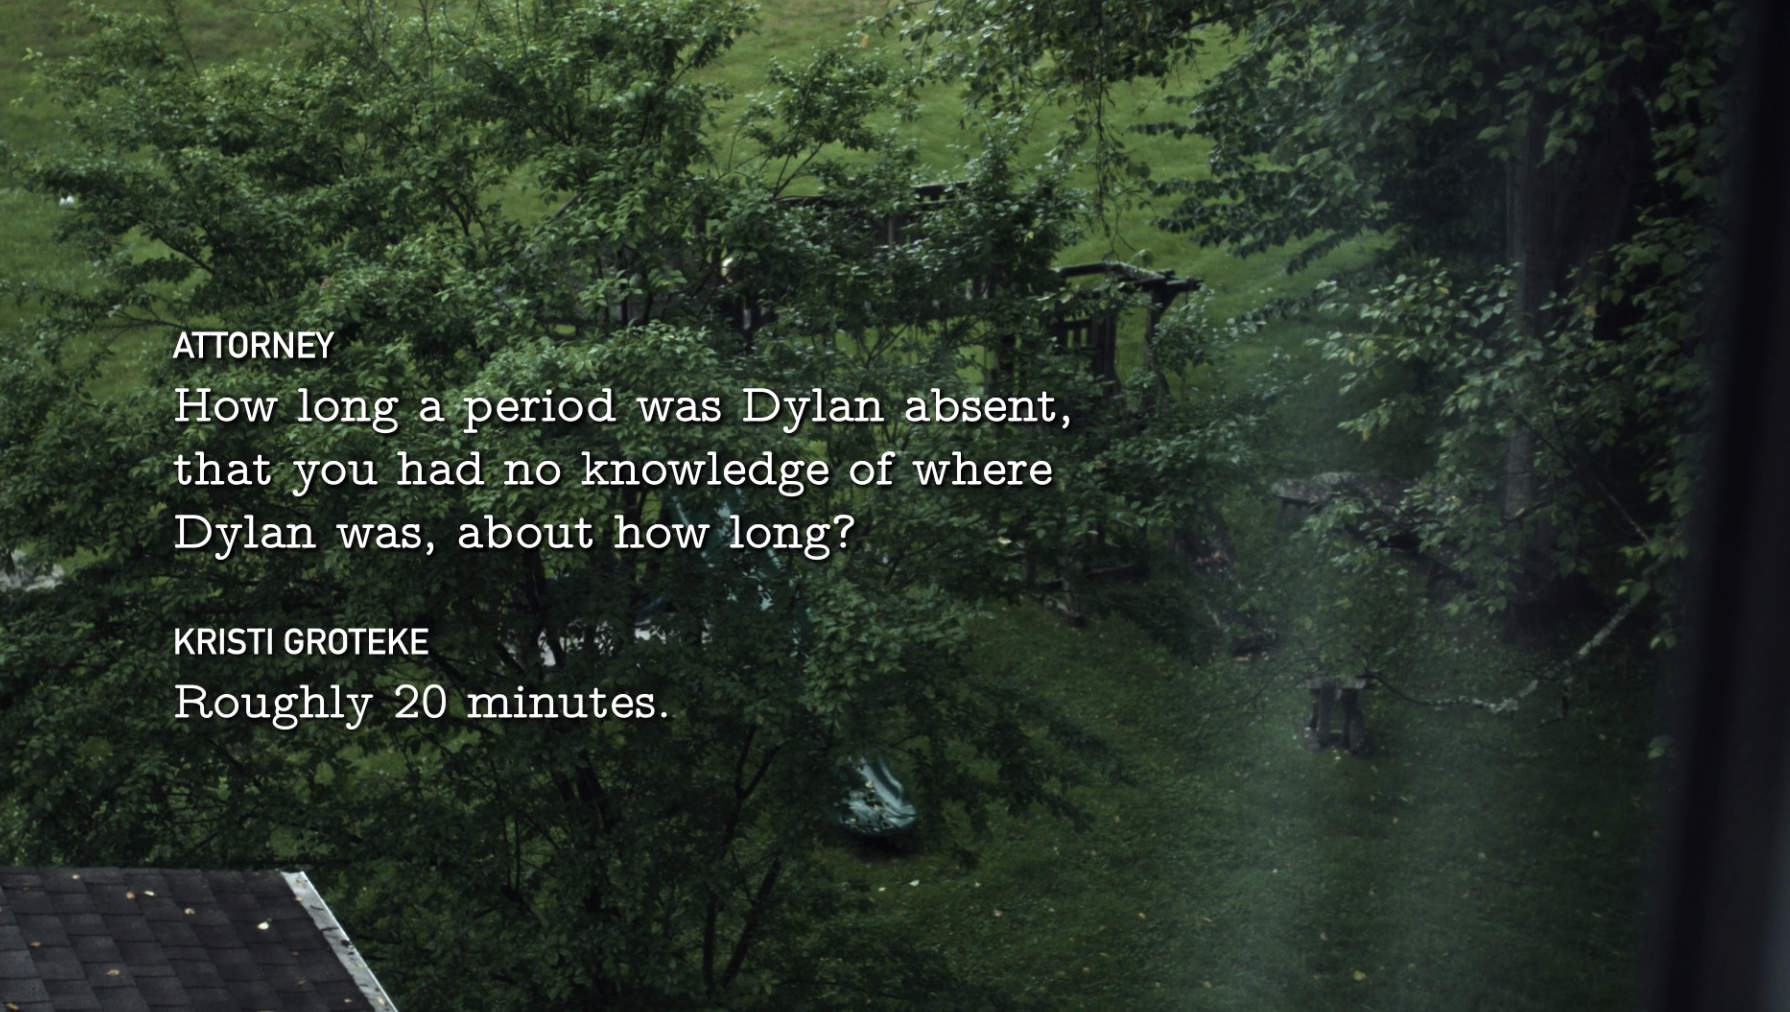 Title card of Kristi Groteke talking to an attorney about Dylan missing for 20 minutes